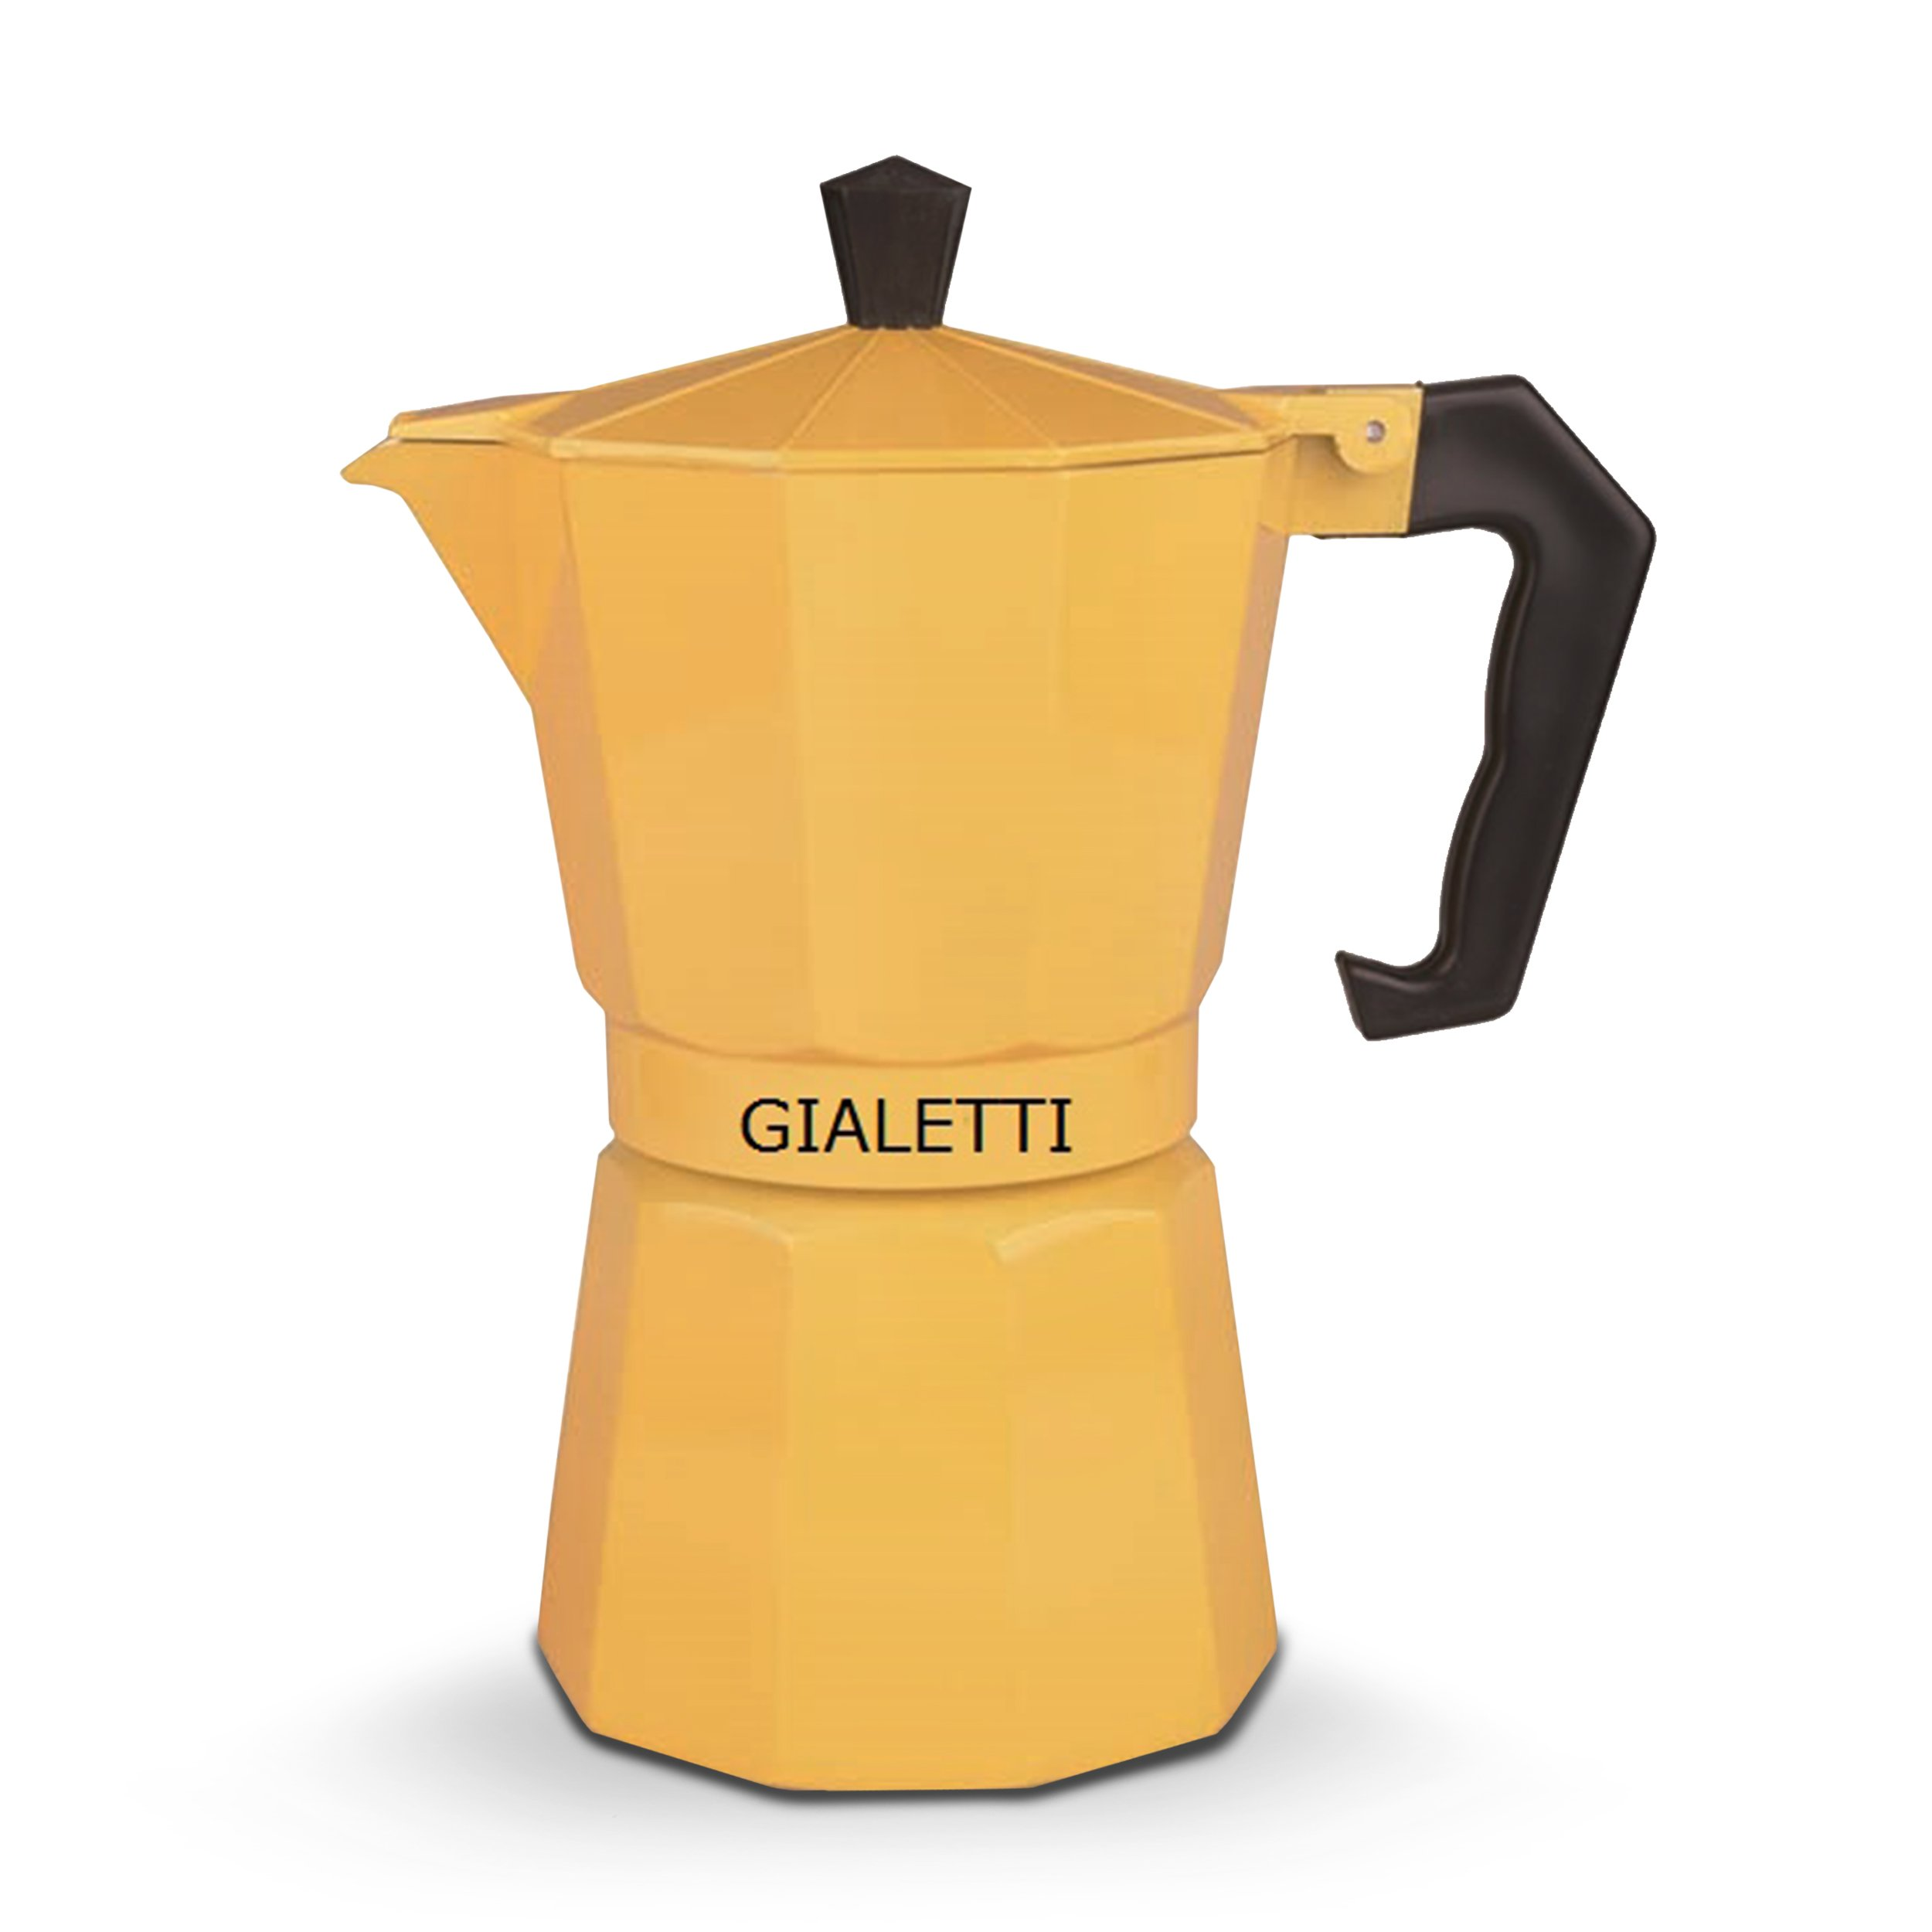 Italian Coffee Maker Percolator : Gialetti Stovetop Espresso Pot 6-Cup Italian Coffee Maker Percolator, Yellow New eBay